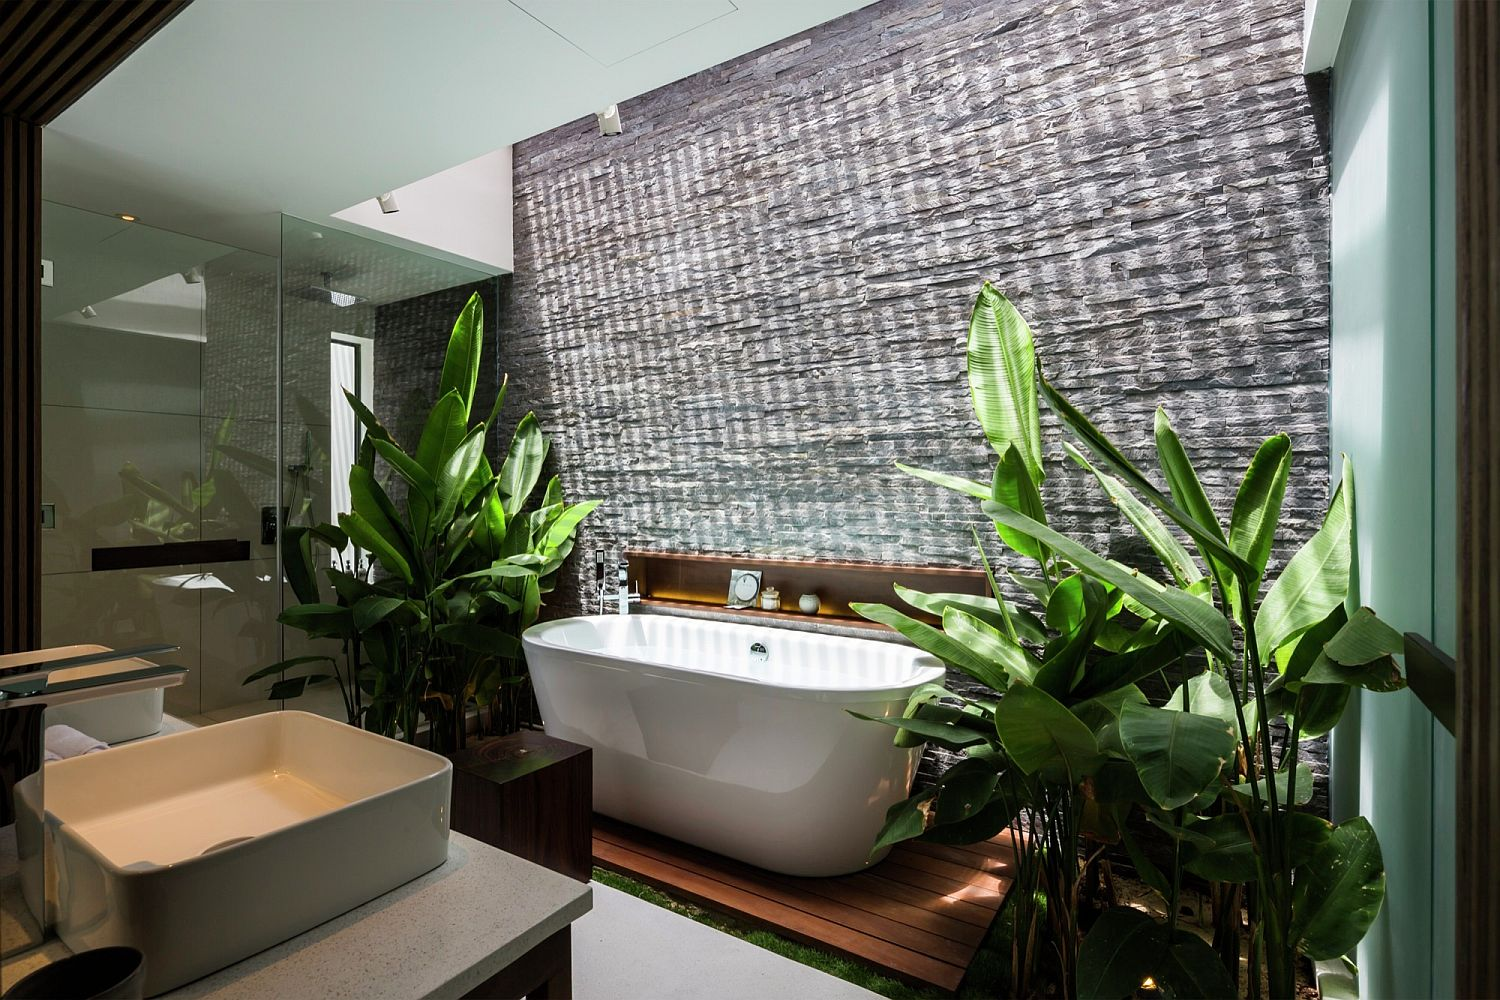 Contemporary bathroom with skylight and tropical greenery